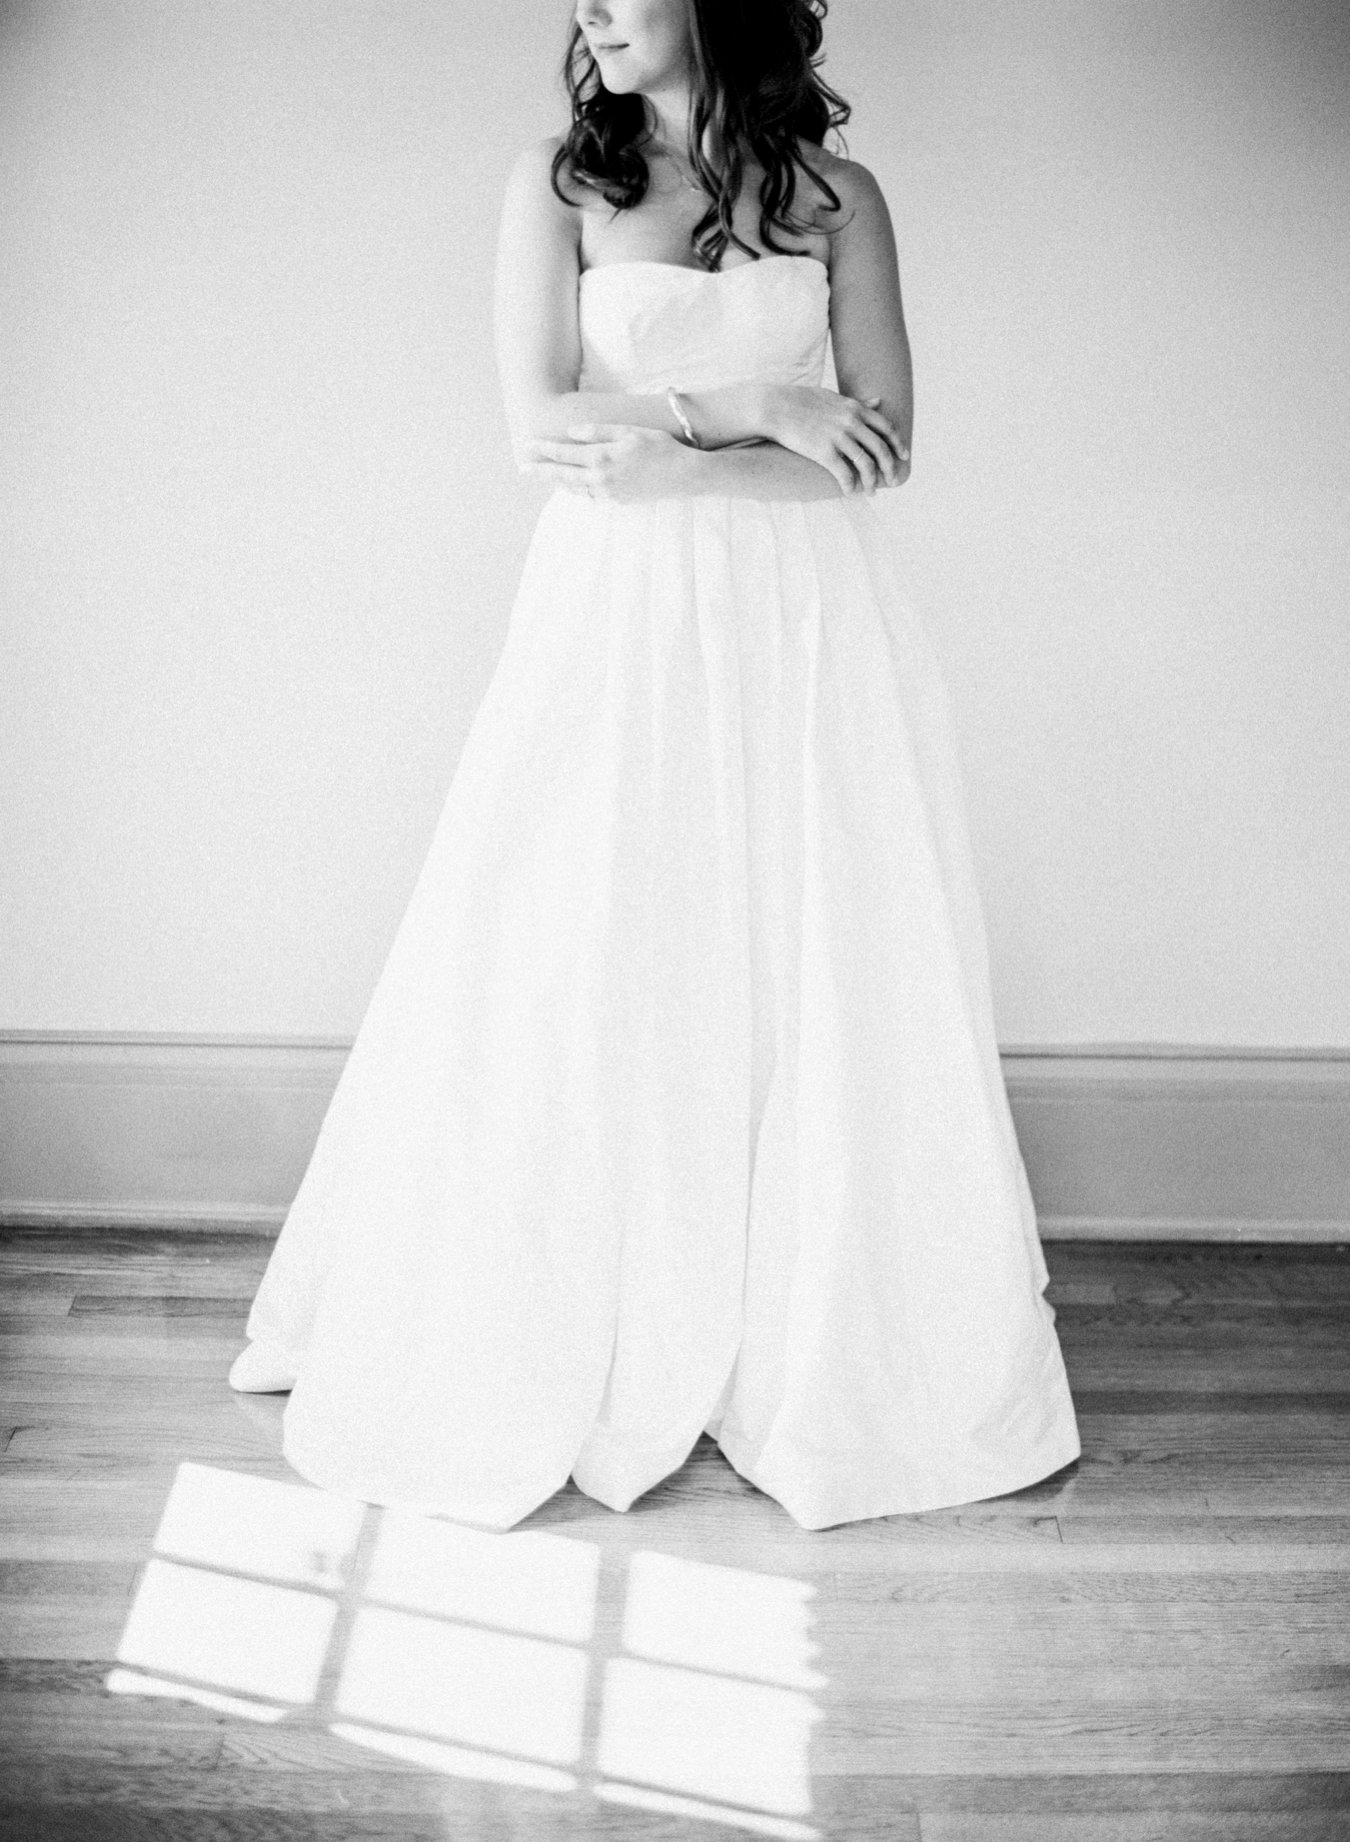 J.Crew bridal gown | Holland Michigan Wedding Photographer | Cory Weber Photography